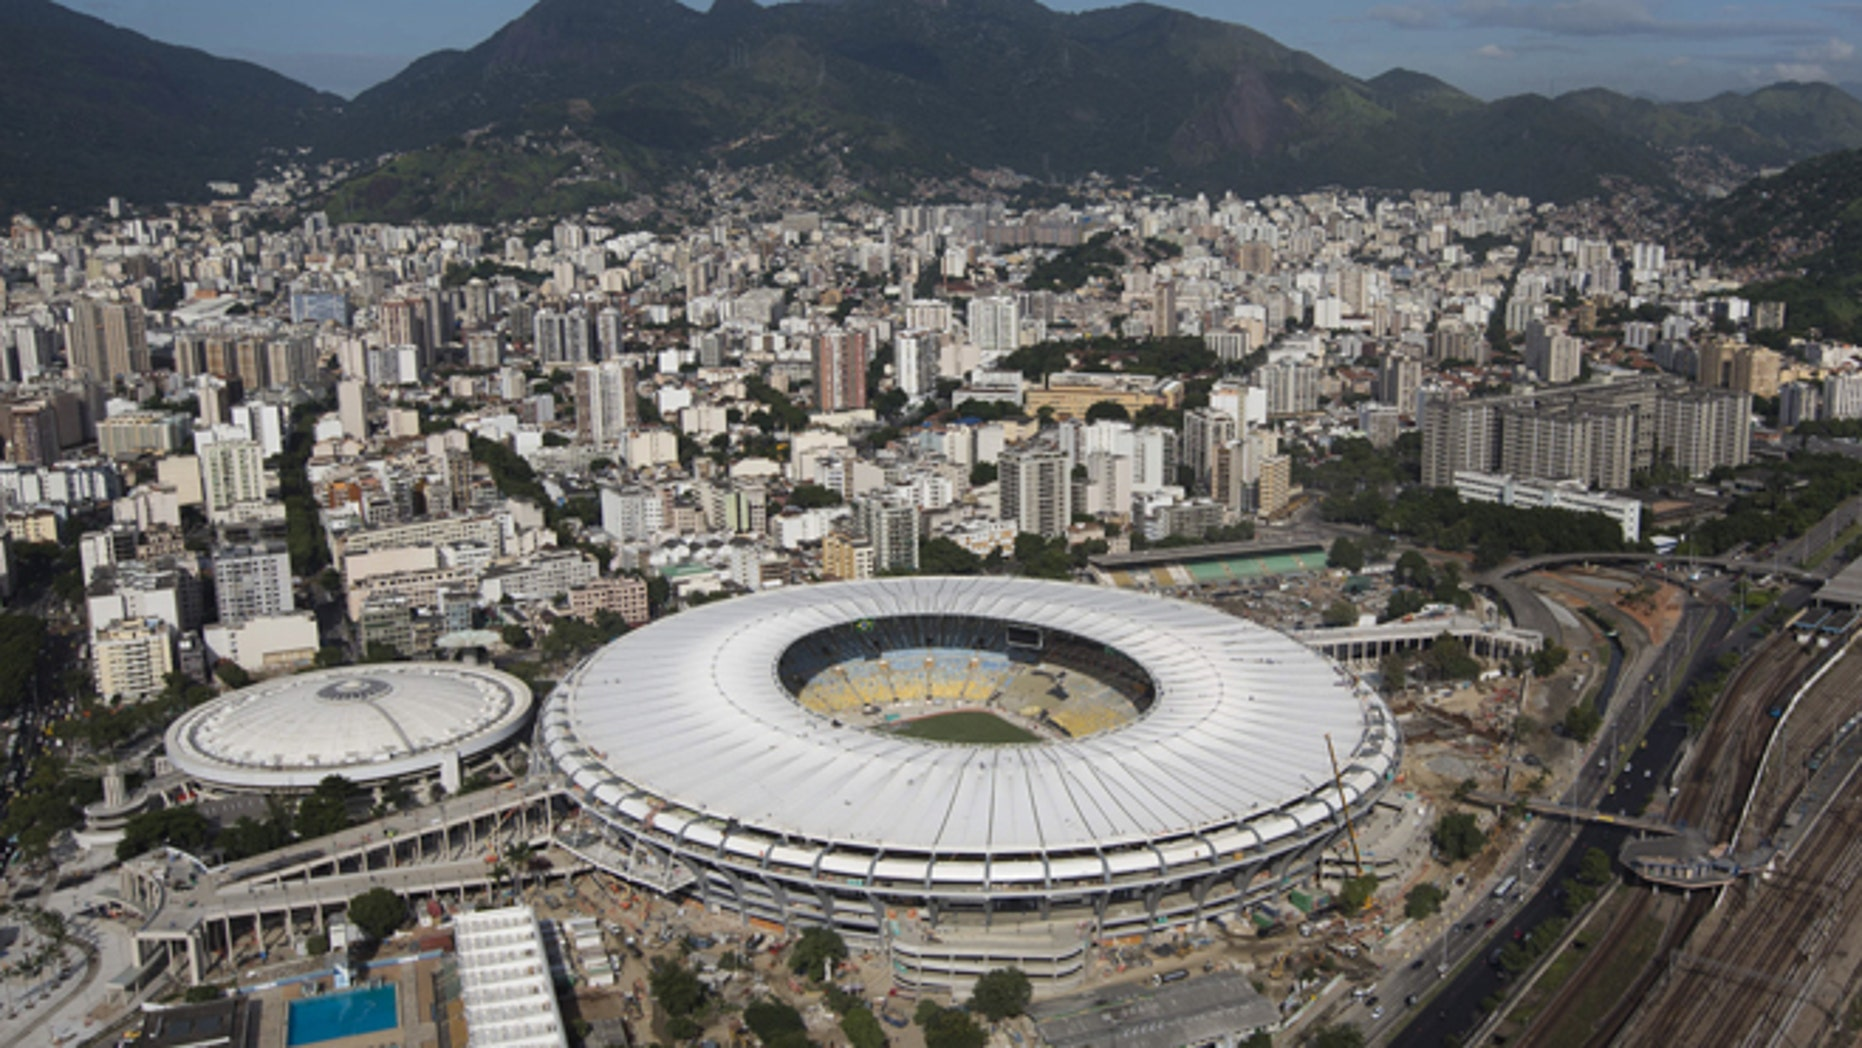 FILE - This April 11, 2013 file photo shows the new Maracana Stadium in Rio de Janeiro, Brazil. The Maracana's capacity has been reduced to just under 79,000 _ it held more than 170,000 for the final match of the 1950 World Cup _ and plans call for it to be eventually shared by Brazilian clubs Flamengo and Fluminense. (AP Photo/Felipe Dana, File)